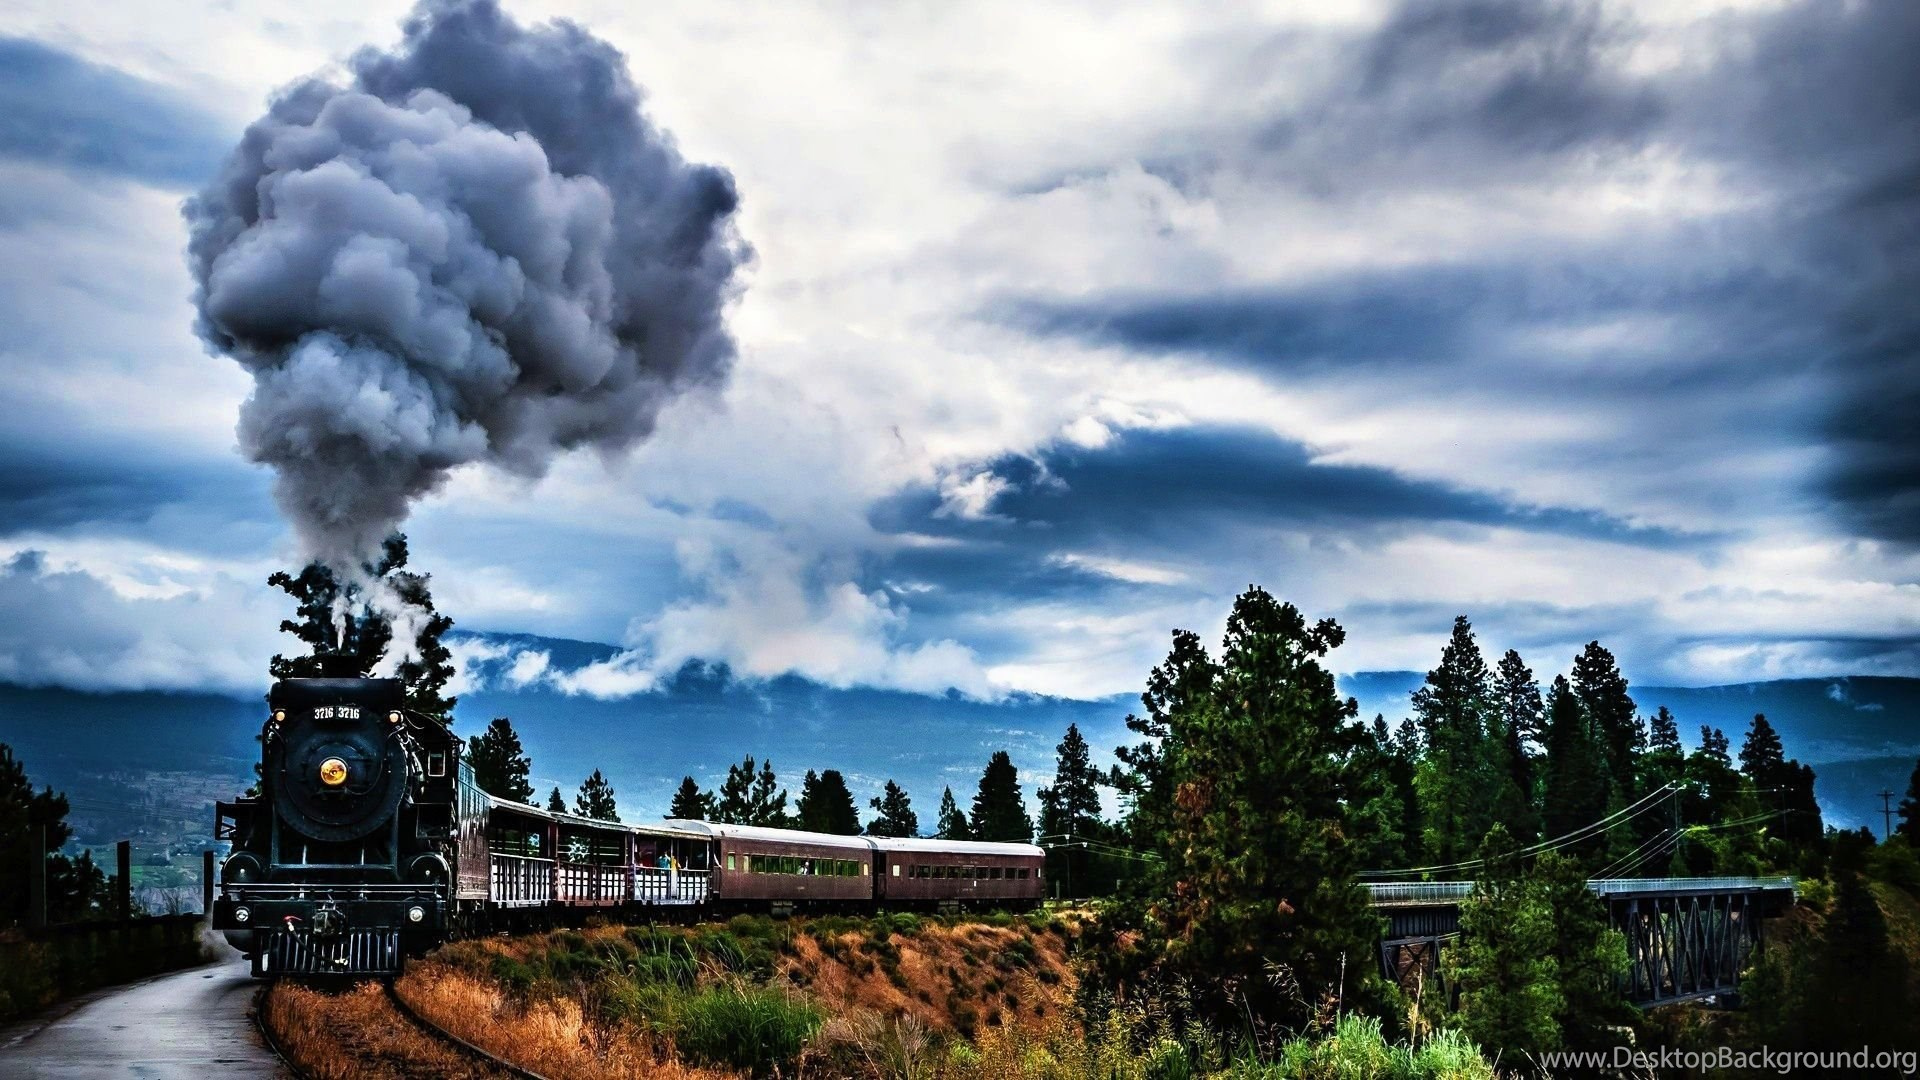 Steam Train Hd Wallpapers Hd Wallpaper Backgrounds Of Your Choice